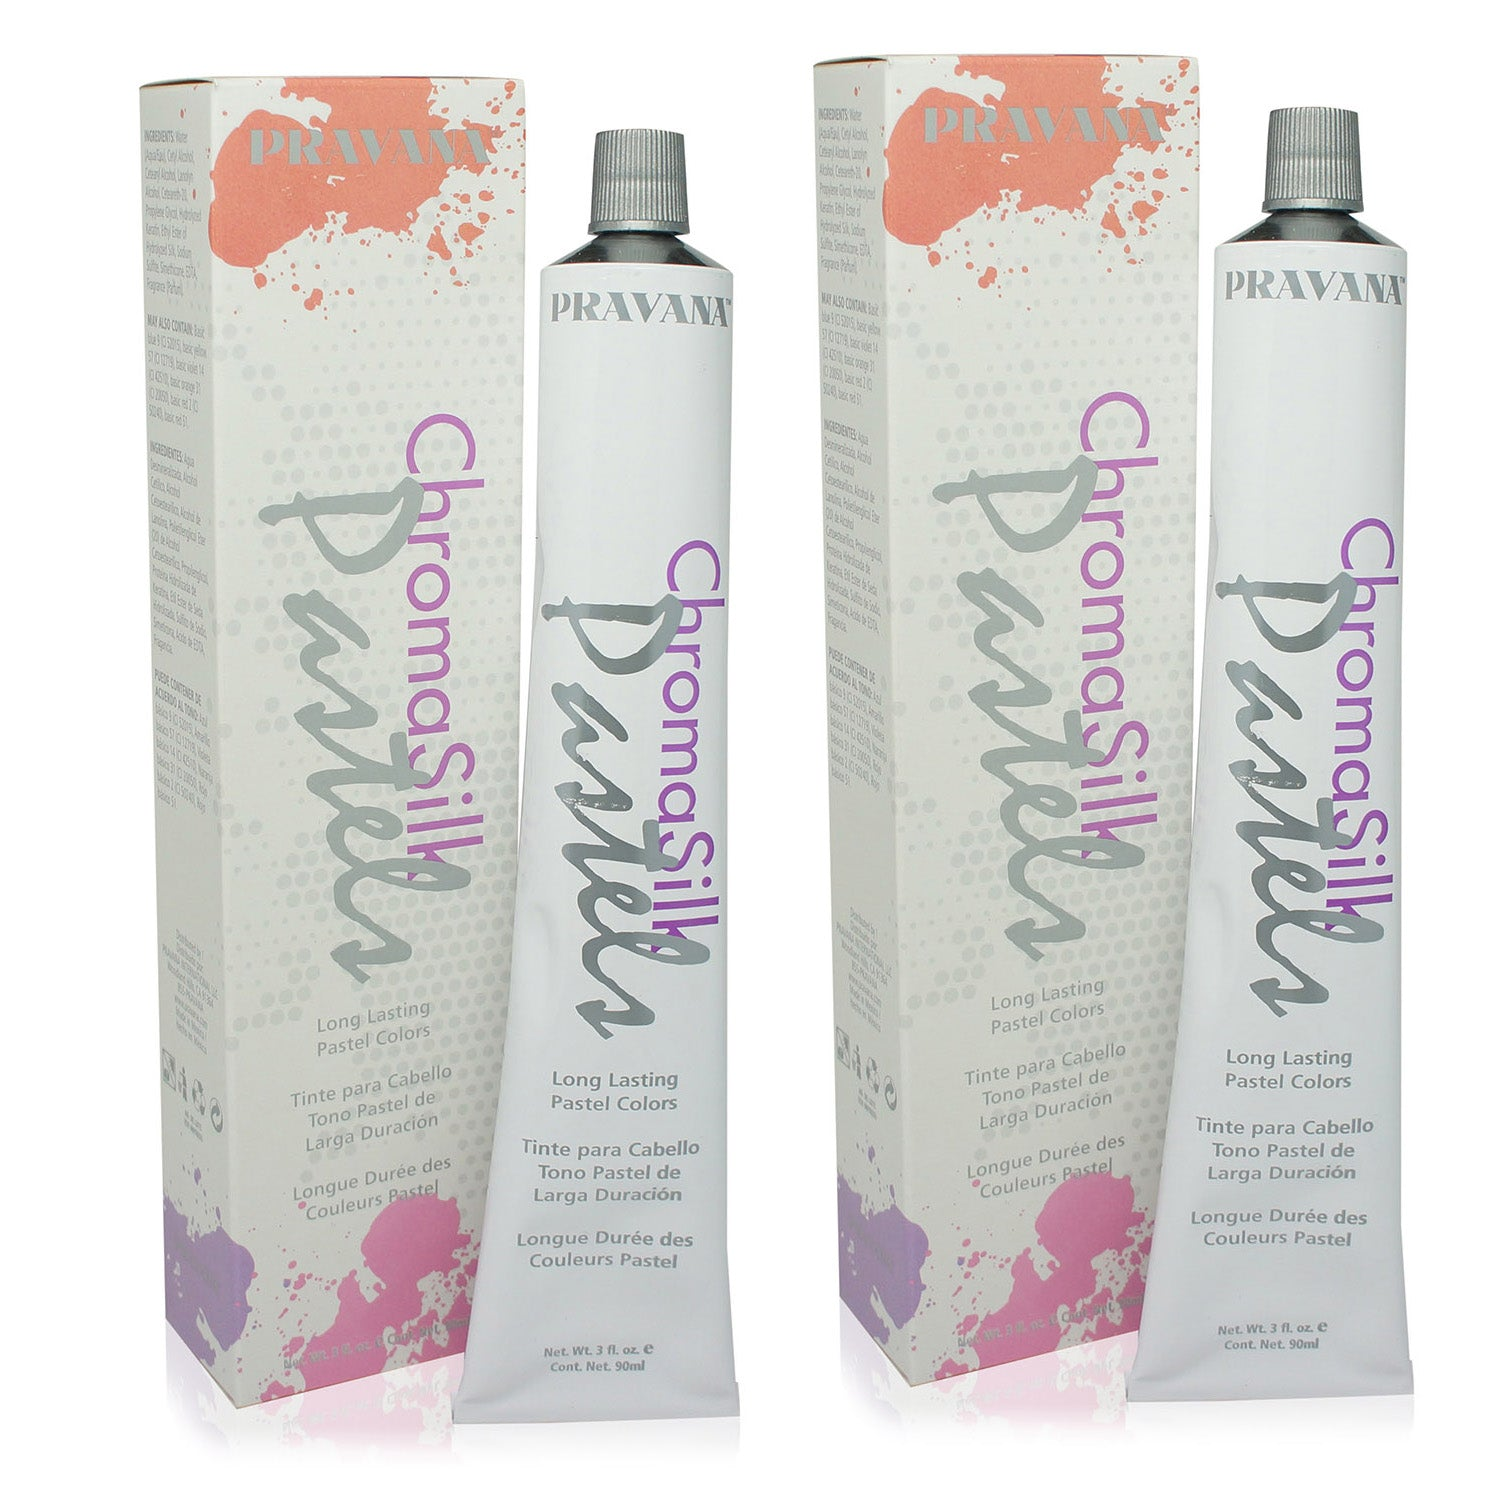 PRAVANA ~ CHROMA SILK VIVIDS HAIR COLOR PRETTY IN PINK 3 OZ ~ 2 PACK